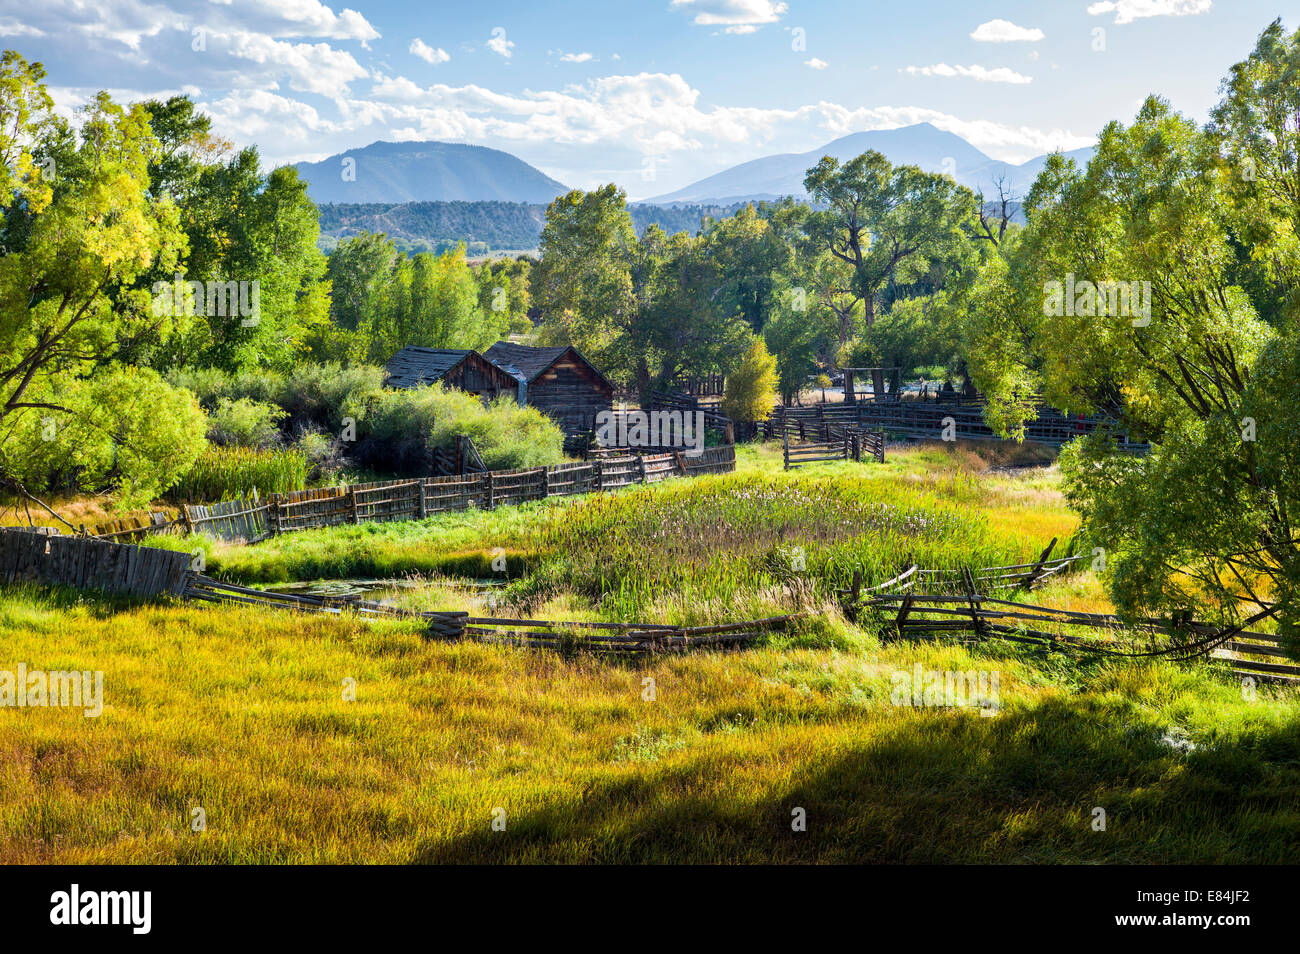 Cottonwood tree & lush pasture along the Arkansas River, Rocky Mountains beyond, Central Colorado, USA - Stock Image